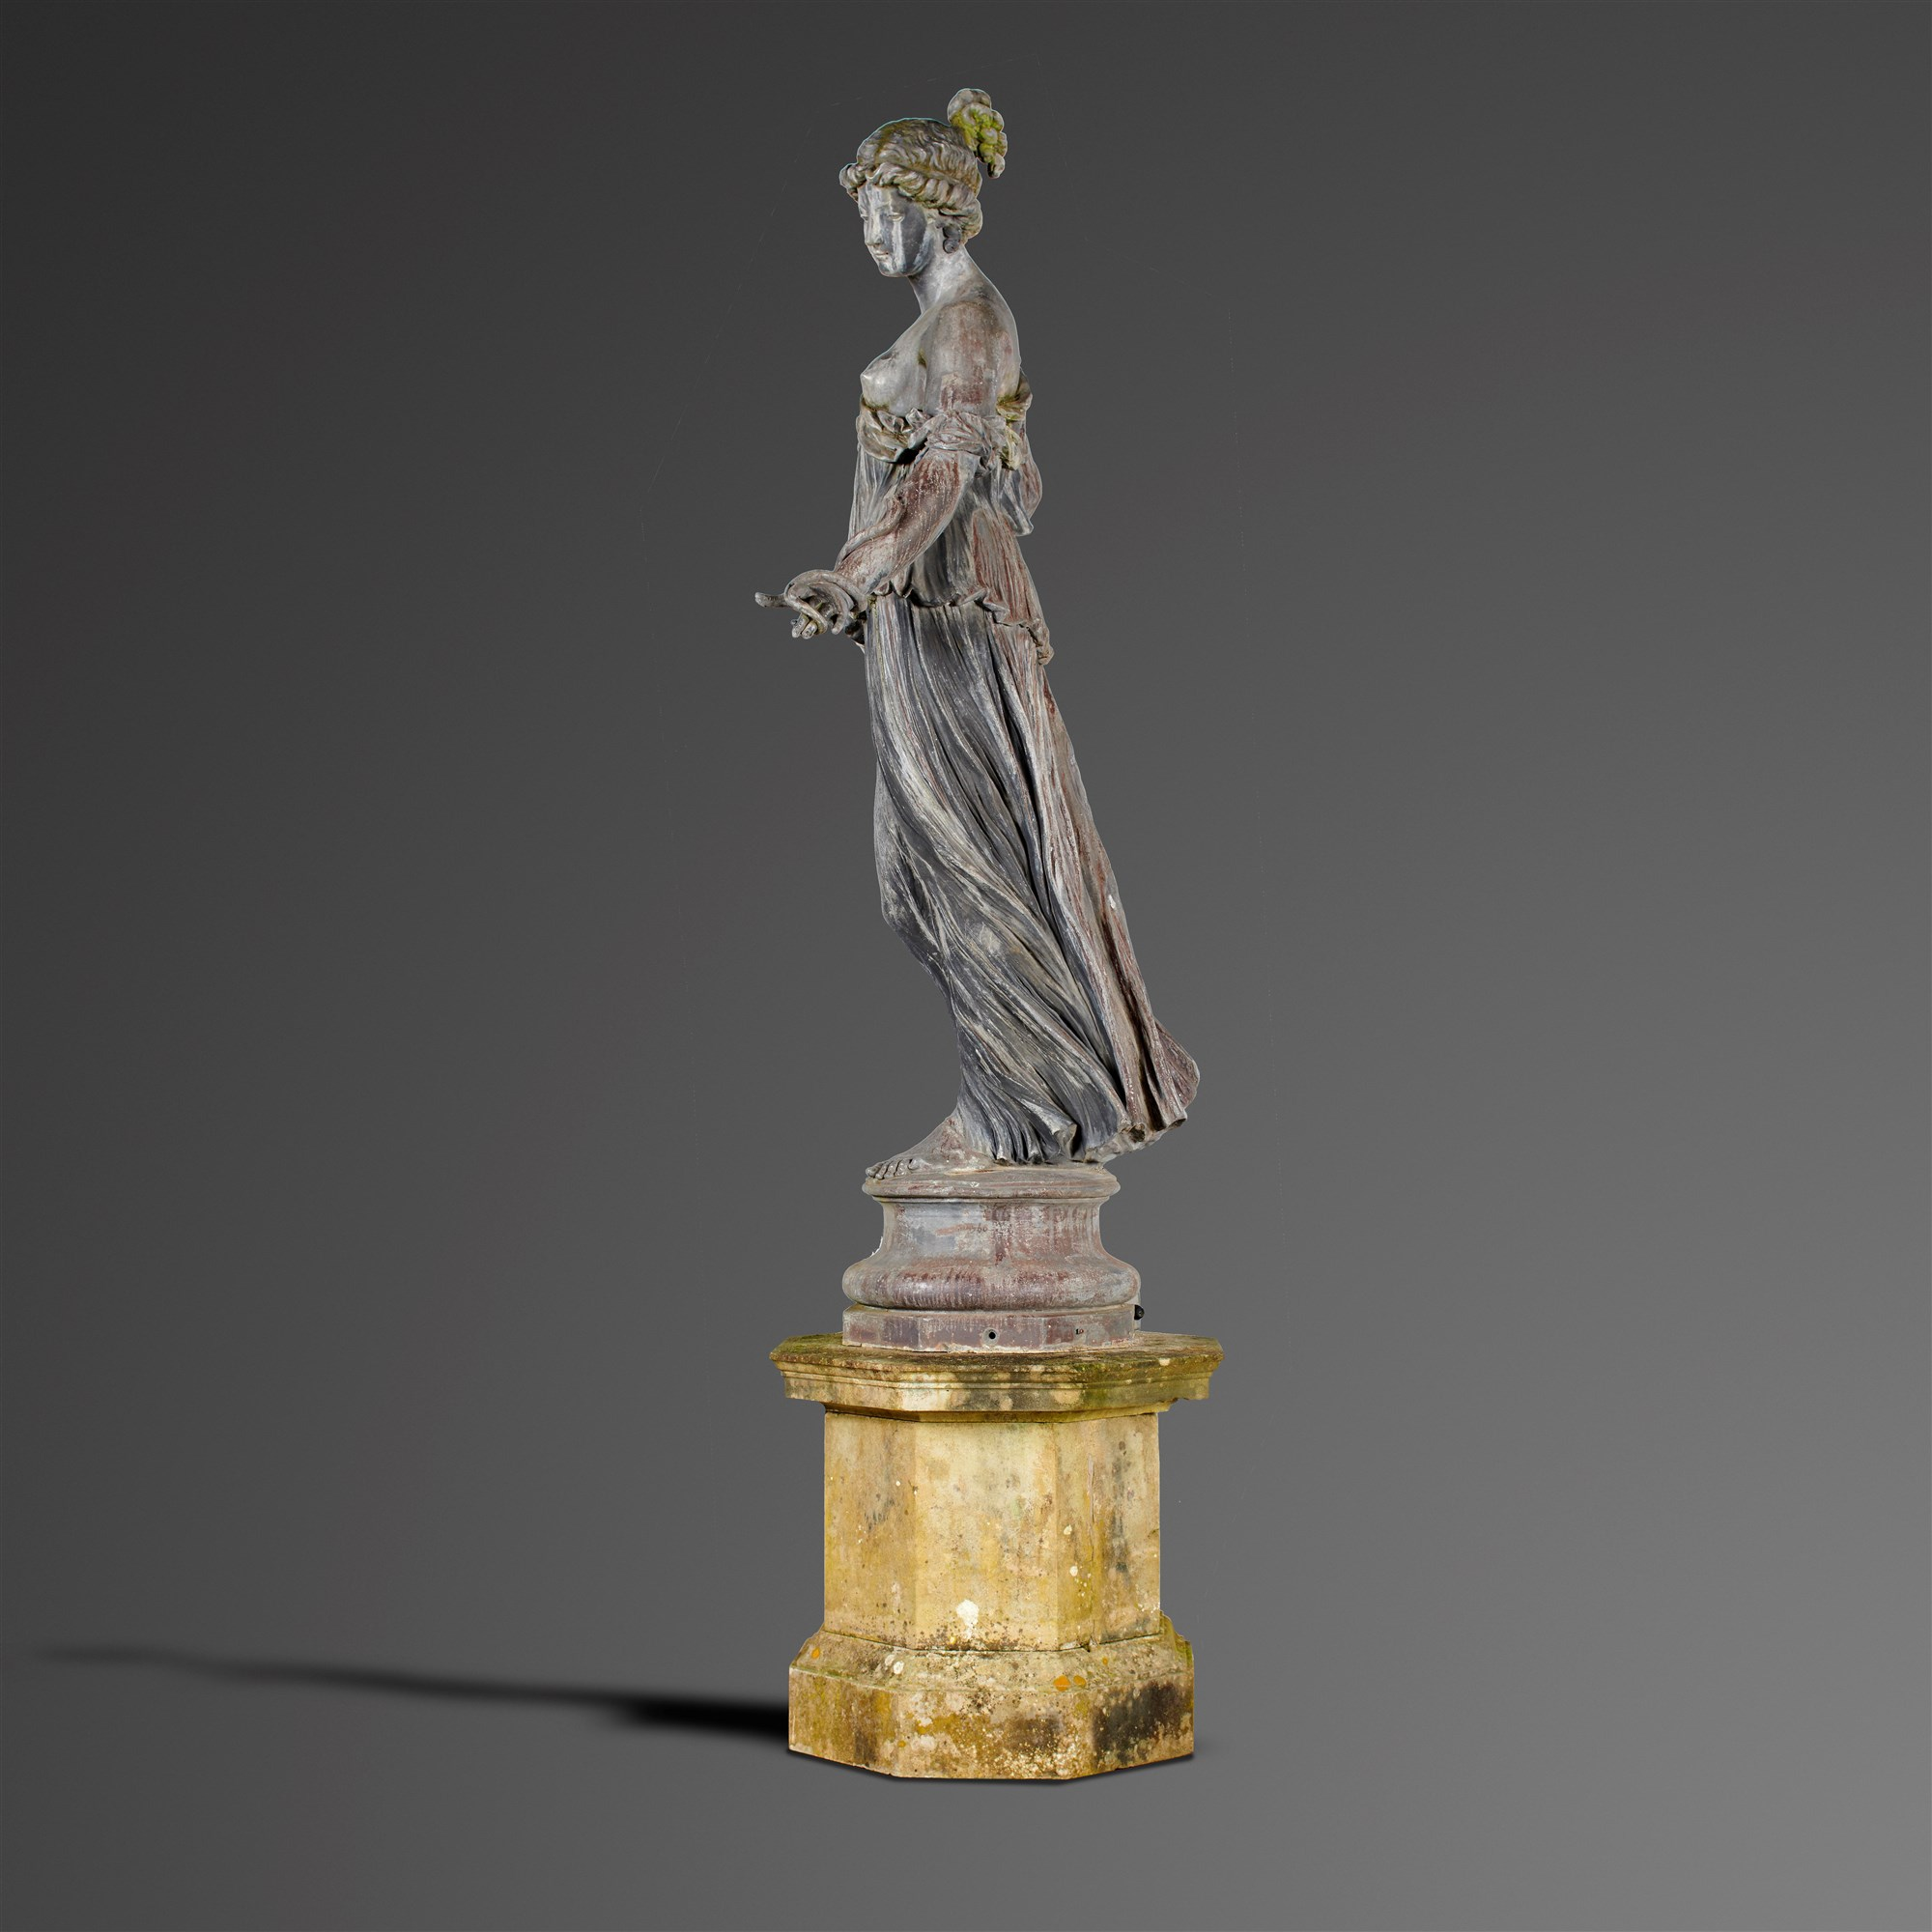 Lot 89 March - An early 20th century lead figure of Hygieia made by the Bromsgrove Guild. Sold for £39,000.